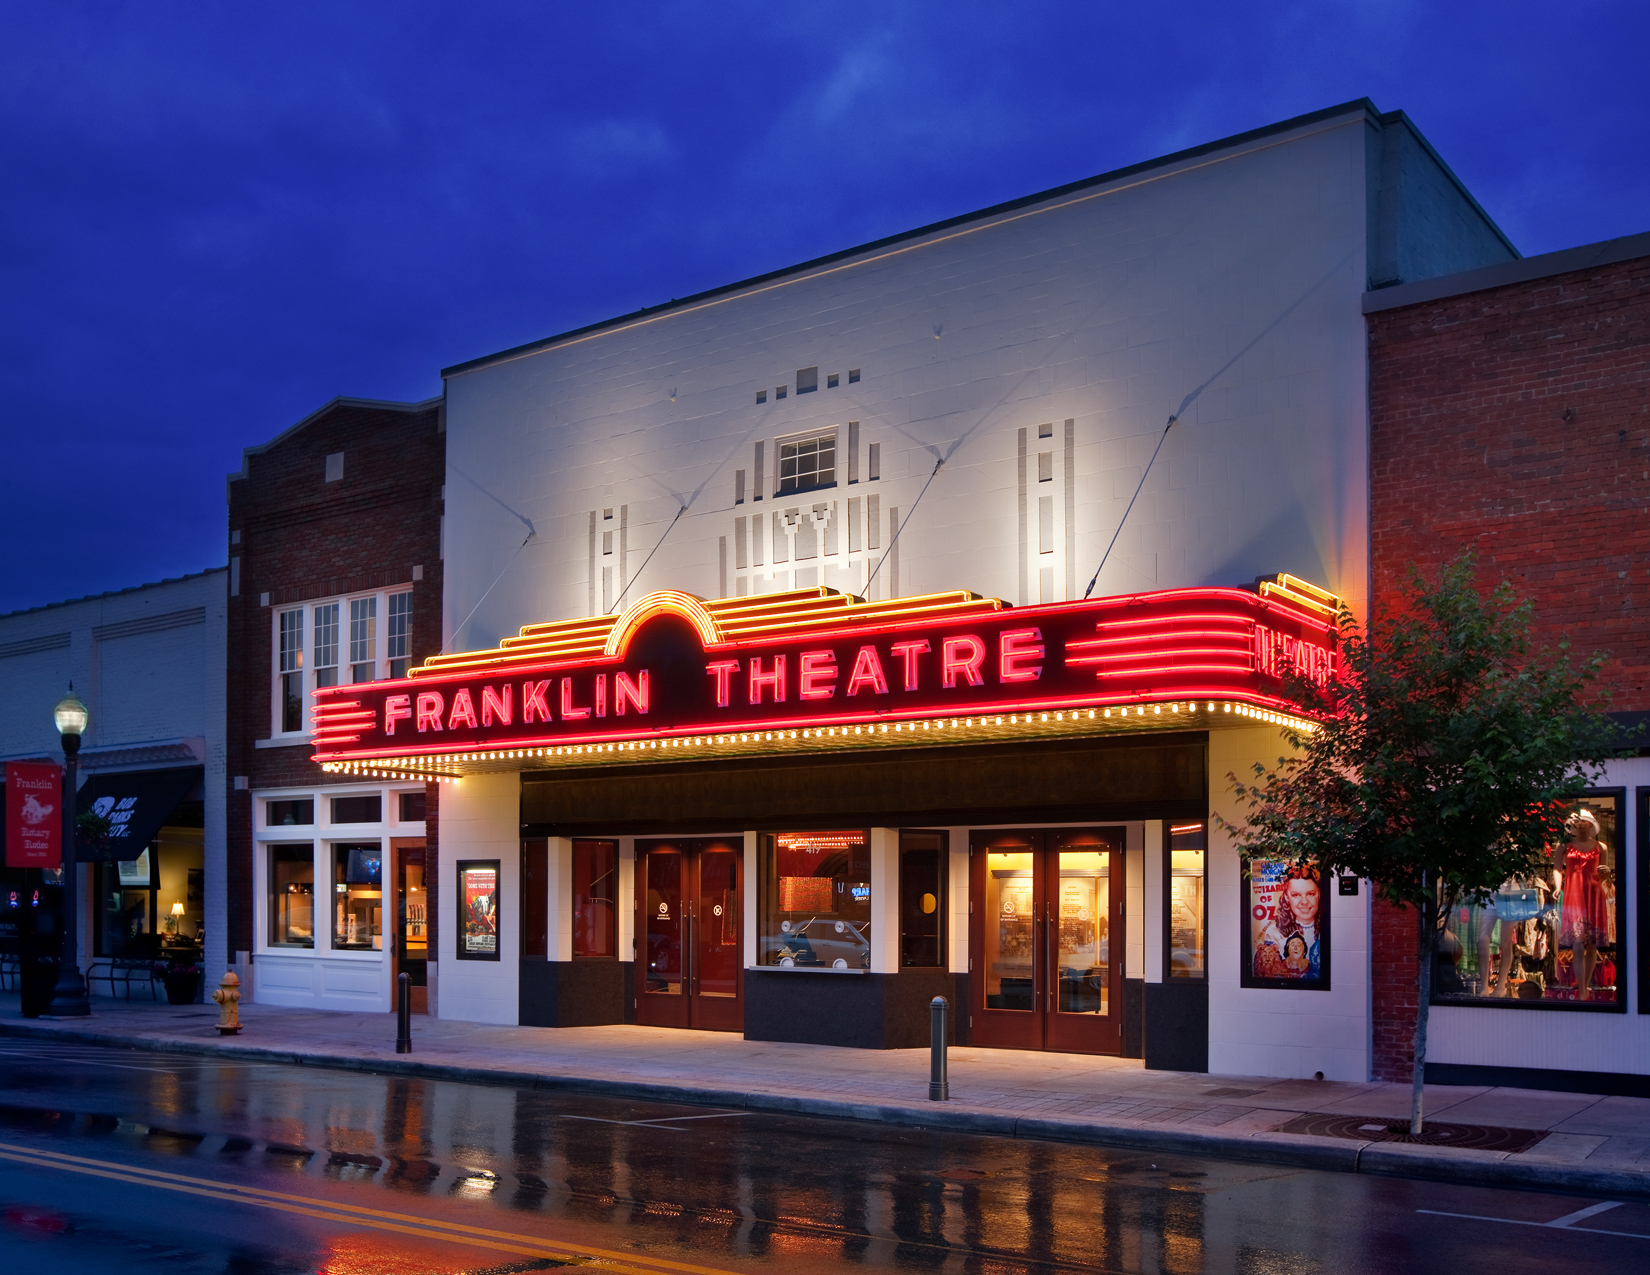 Historic Franklin Theatre Is a Charming Venue for Live ...